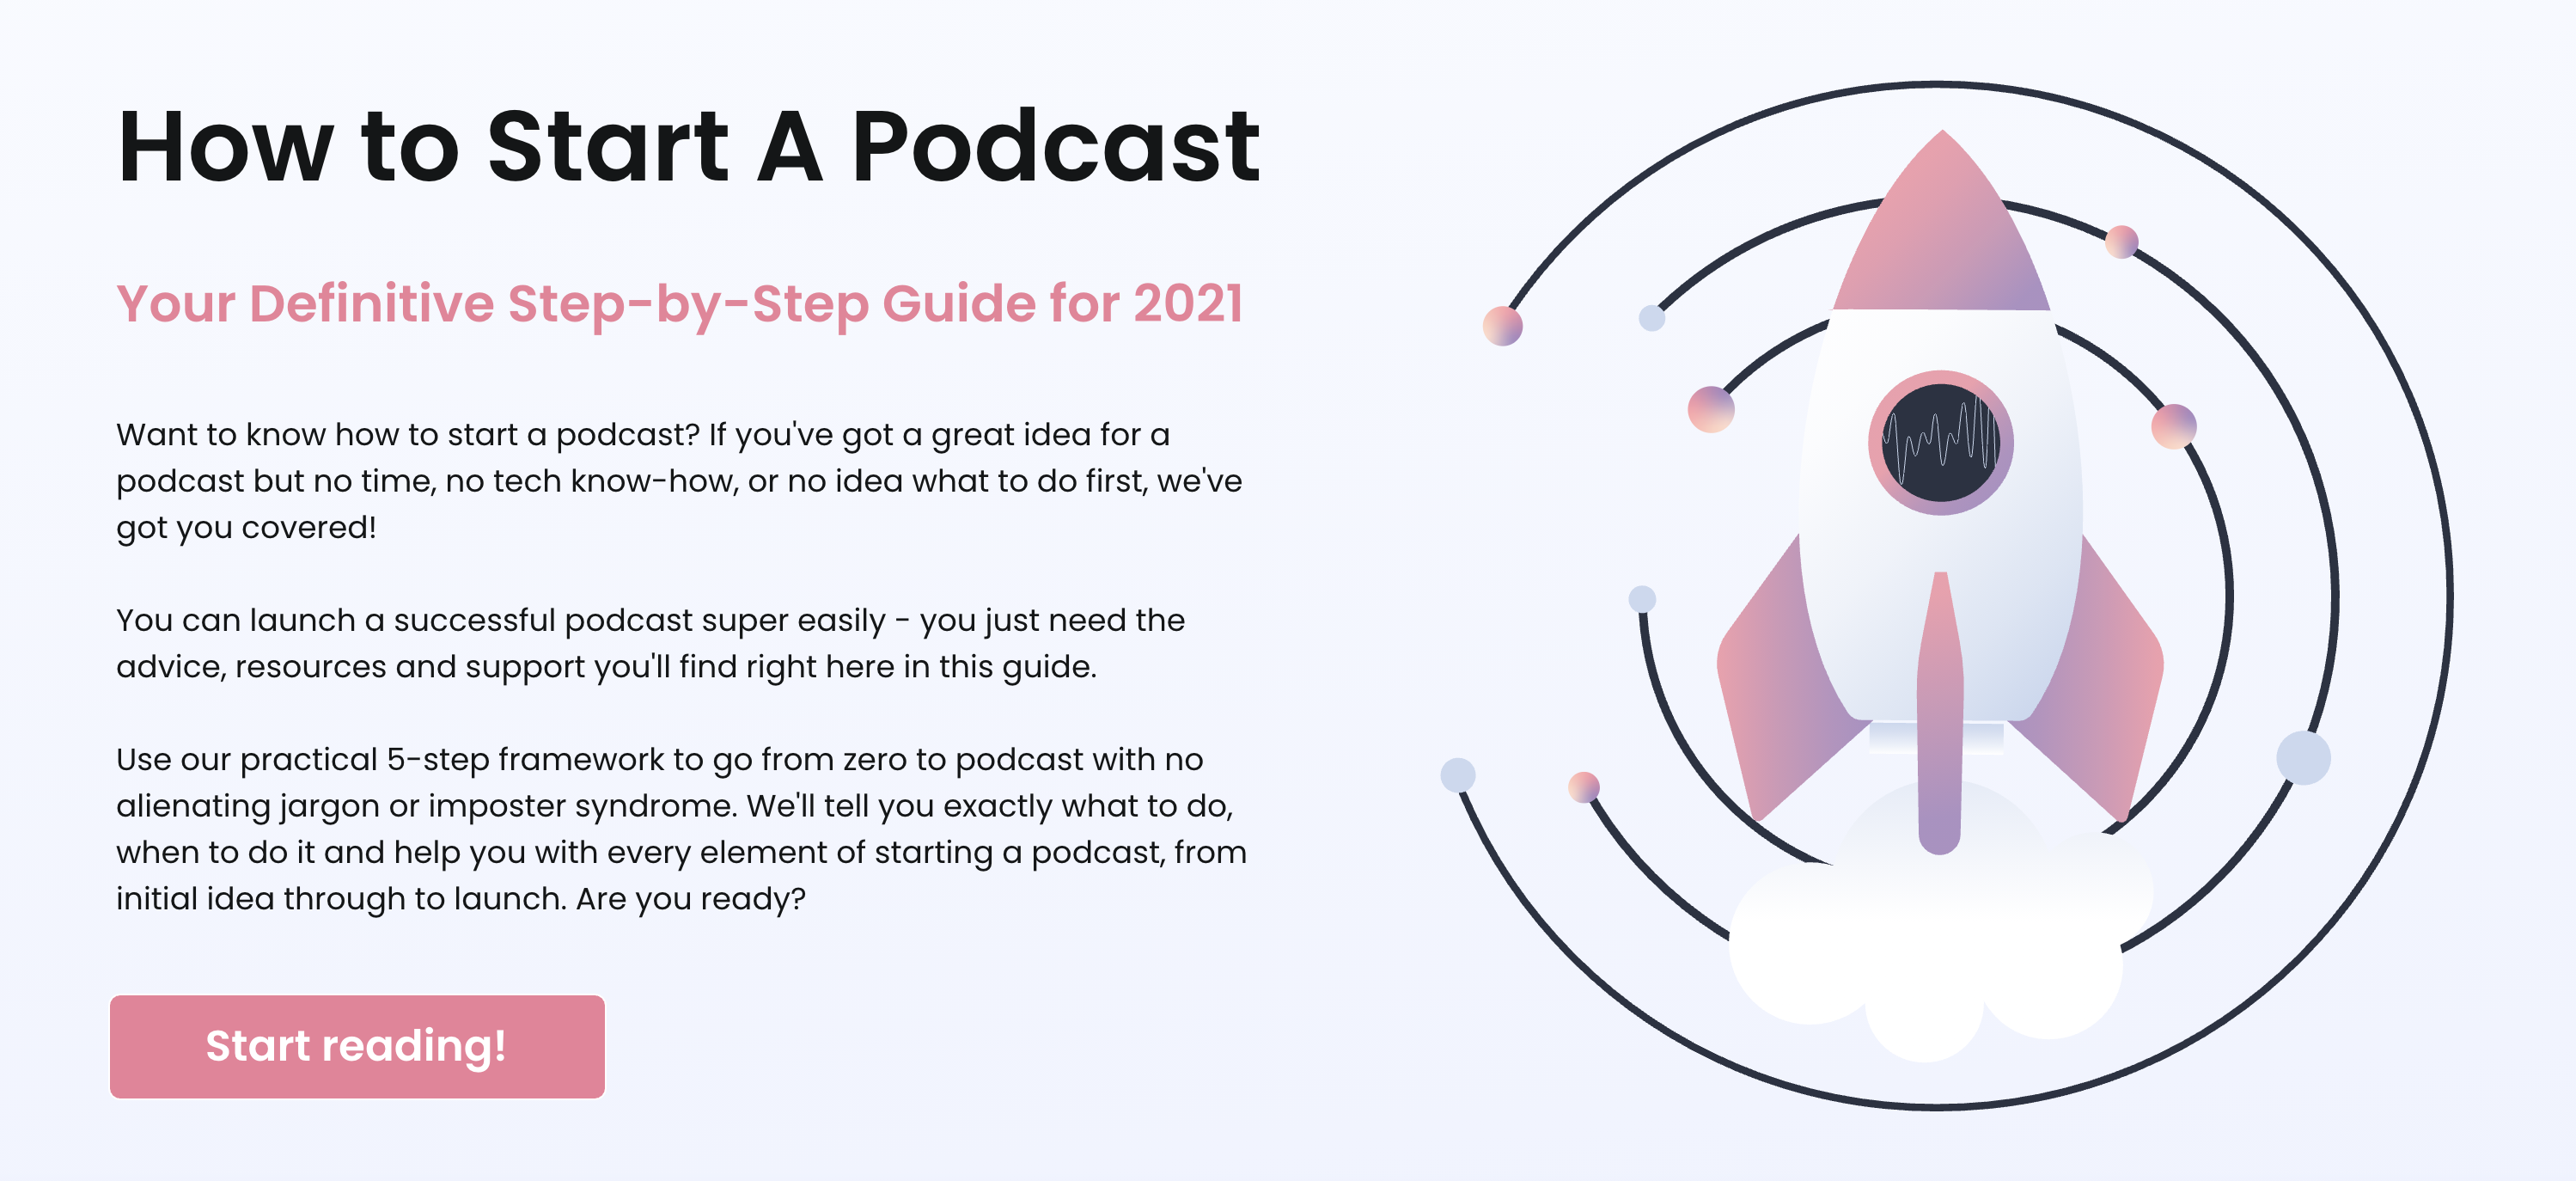 A screenshot of the how to start a podcast: definitive step-by-step guide for 2021.